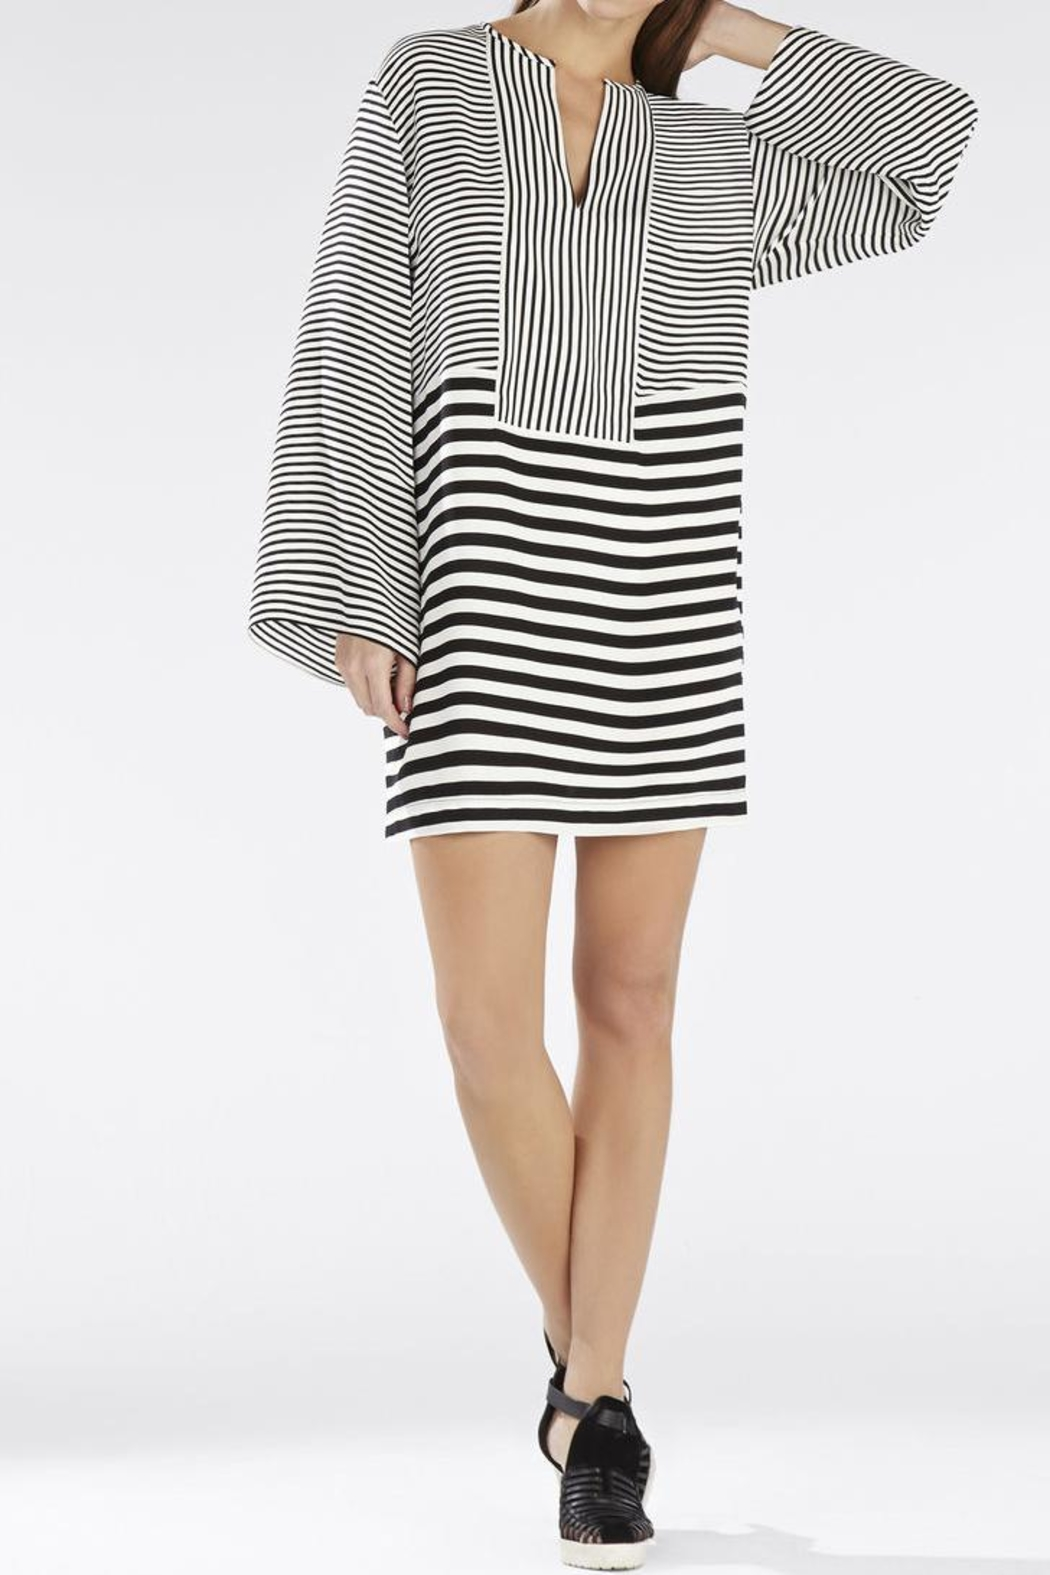 BCBG Max Azria Amilia Dress - Main Image